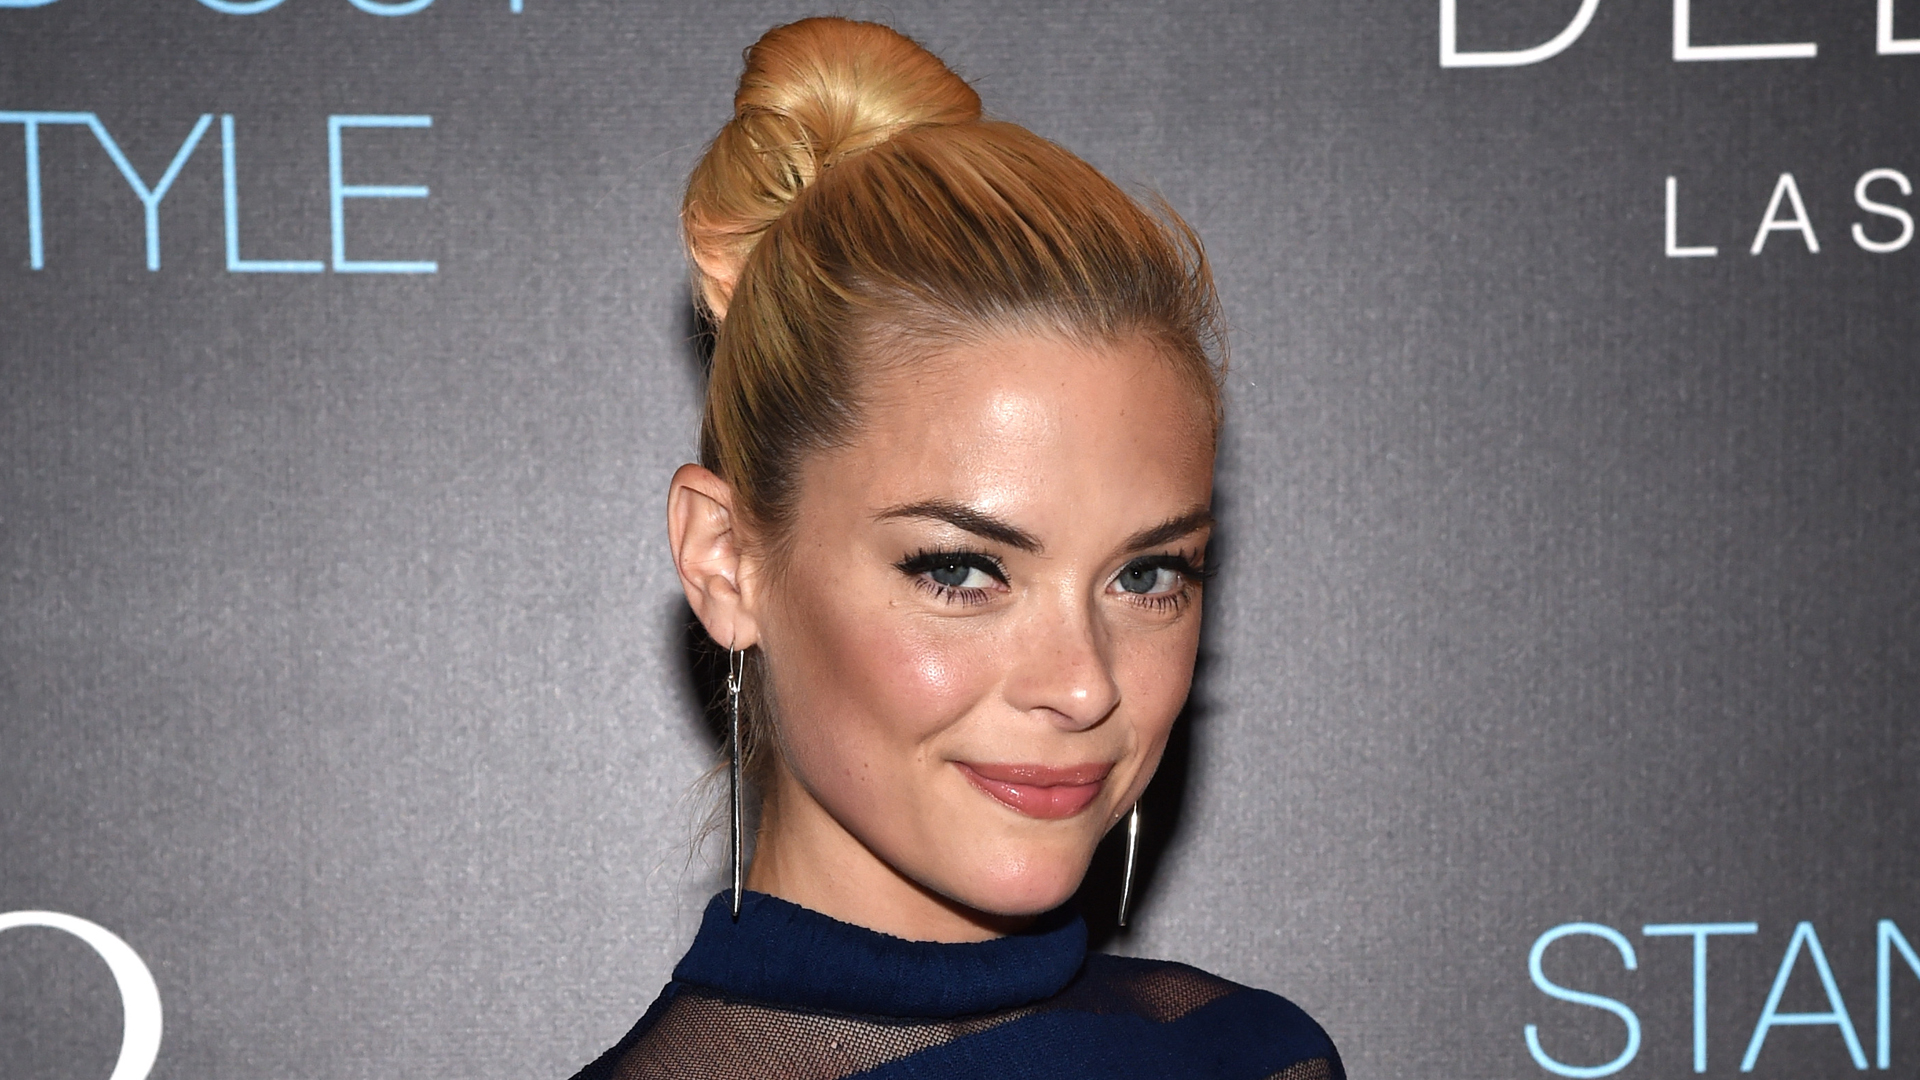 Actress Jaime King attends the Delano Las Vegas grand opening party with Jaime King, Charlotte Ronson, Sam Ronson and MAGIC! at Delano Las Vegas at the Mandalay Bay Resort and Casino on Sept. 18, 2014, in Las Vegas. (Credit: Ethan Miller/Getty Images for Delano Las Vegas)